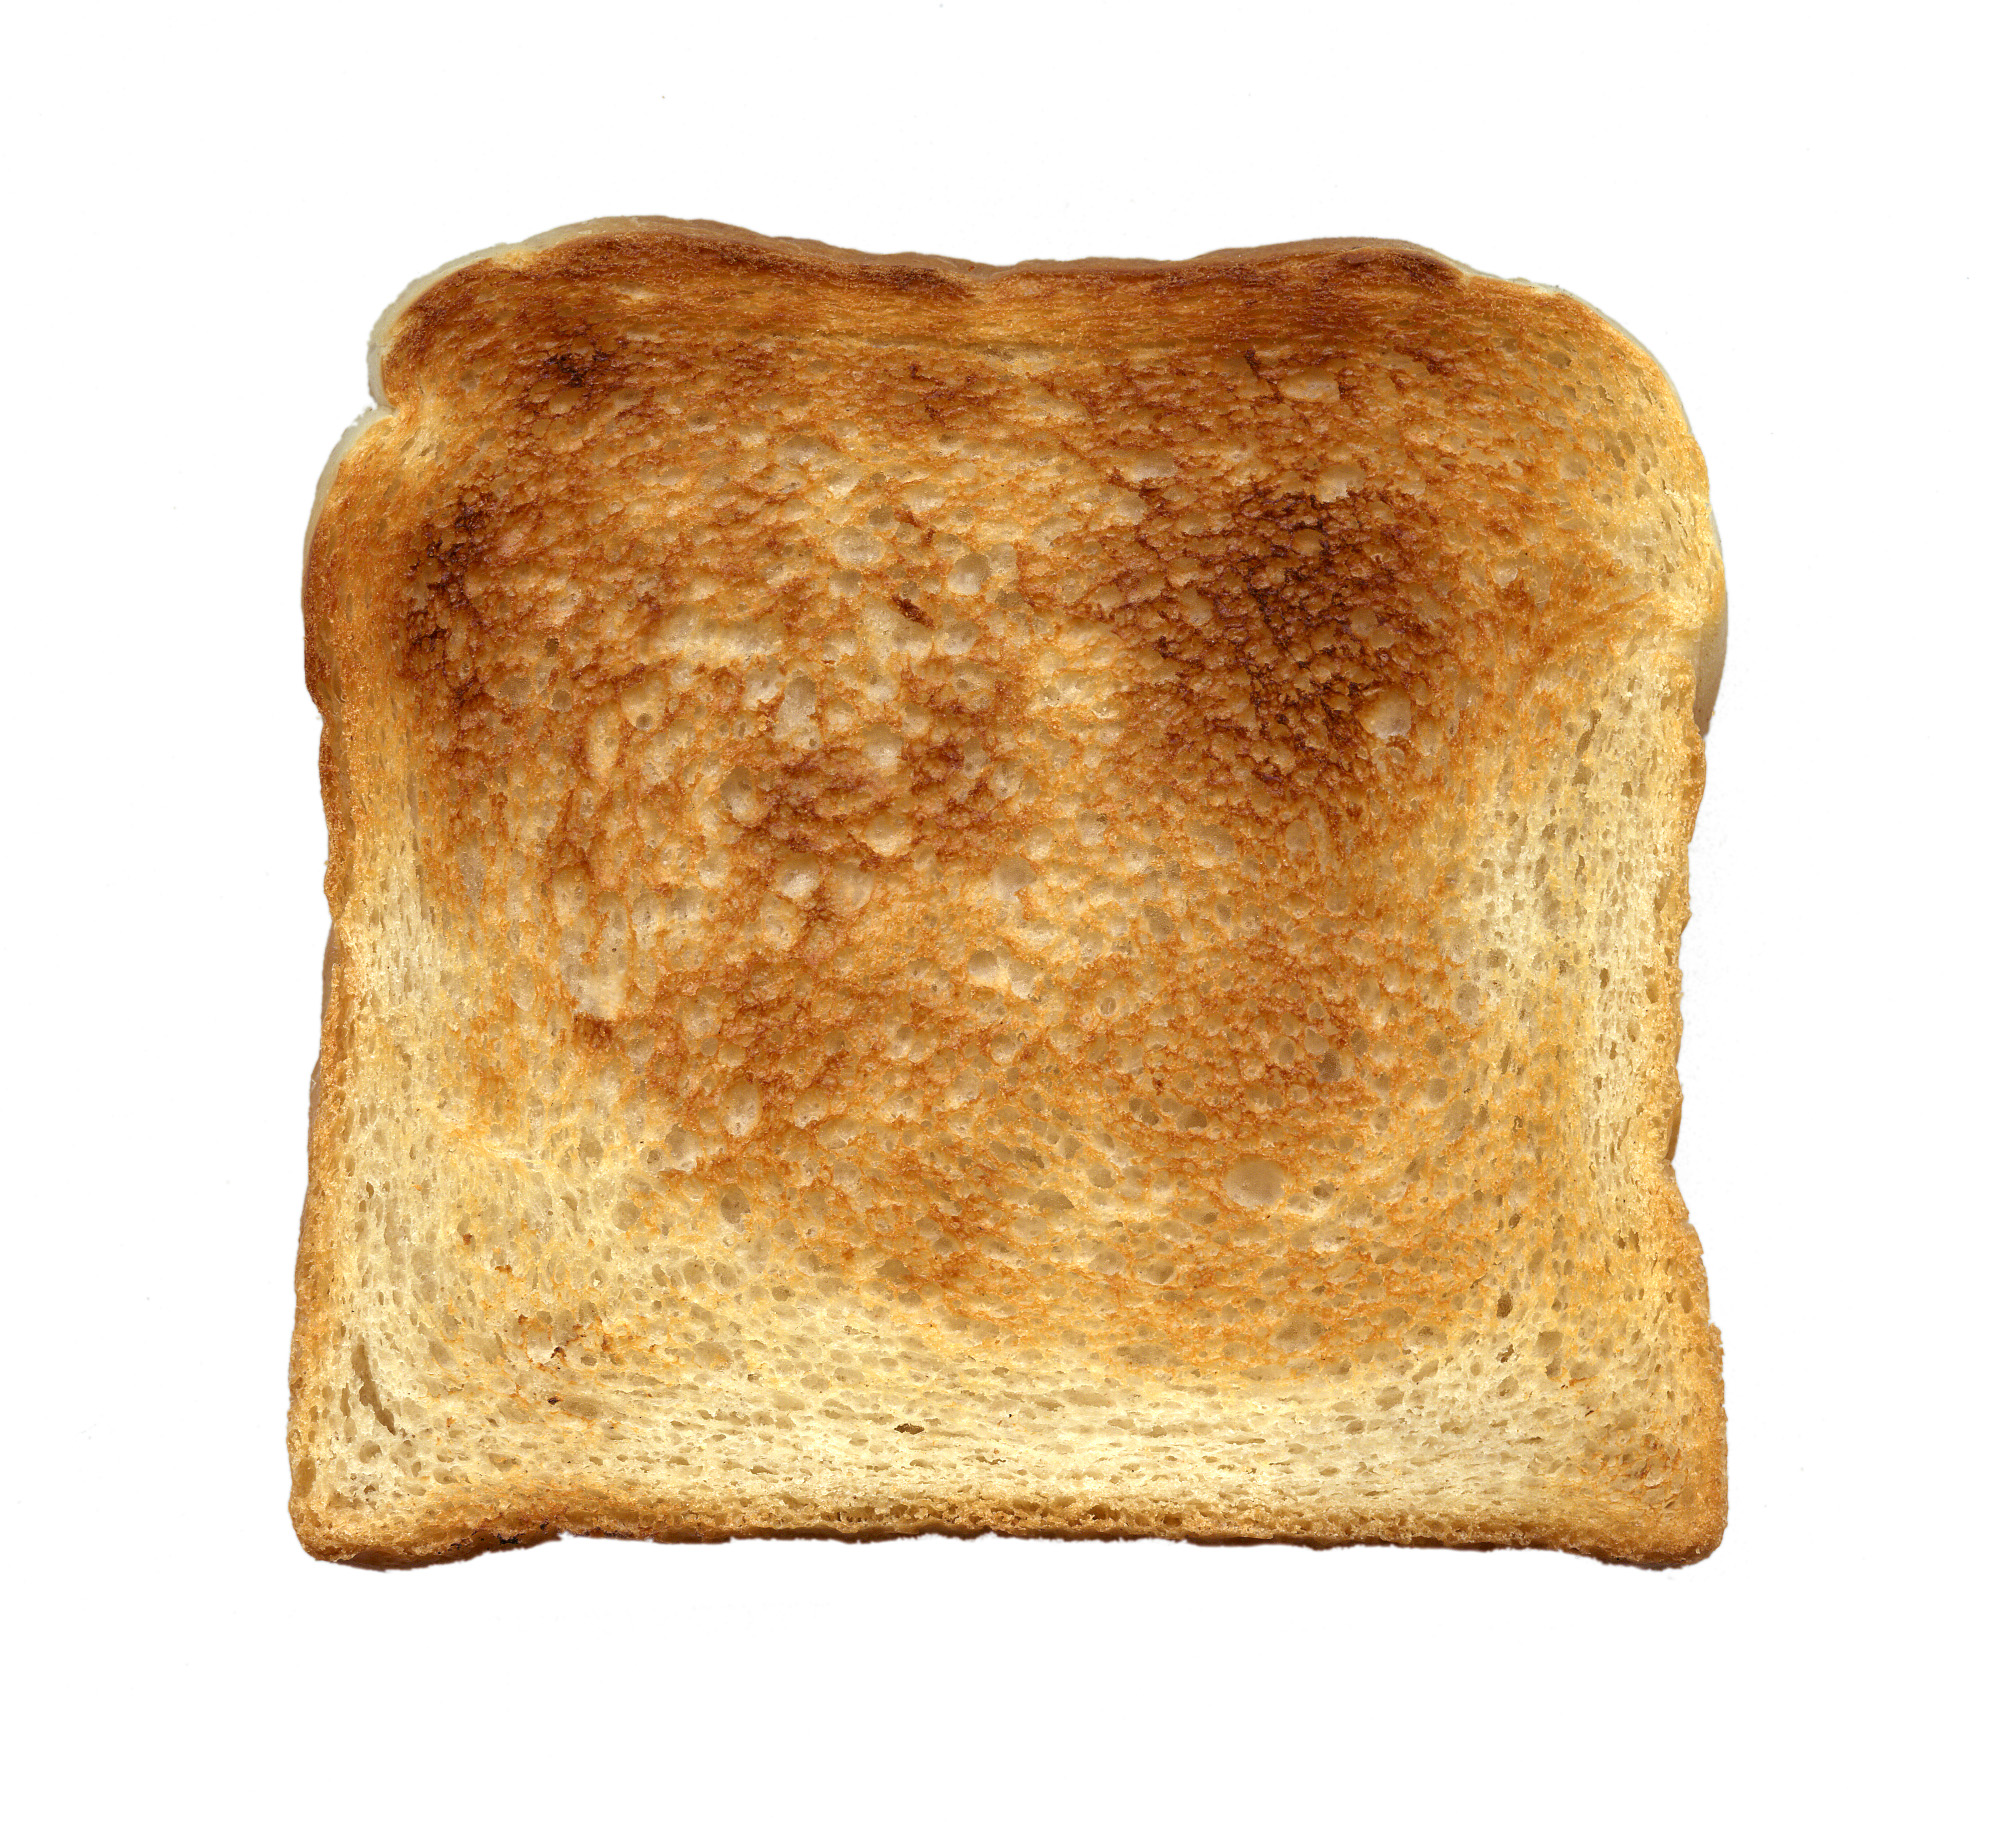 Toast Clipart No Background.